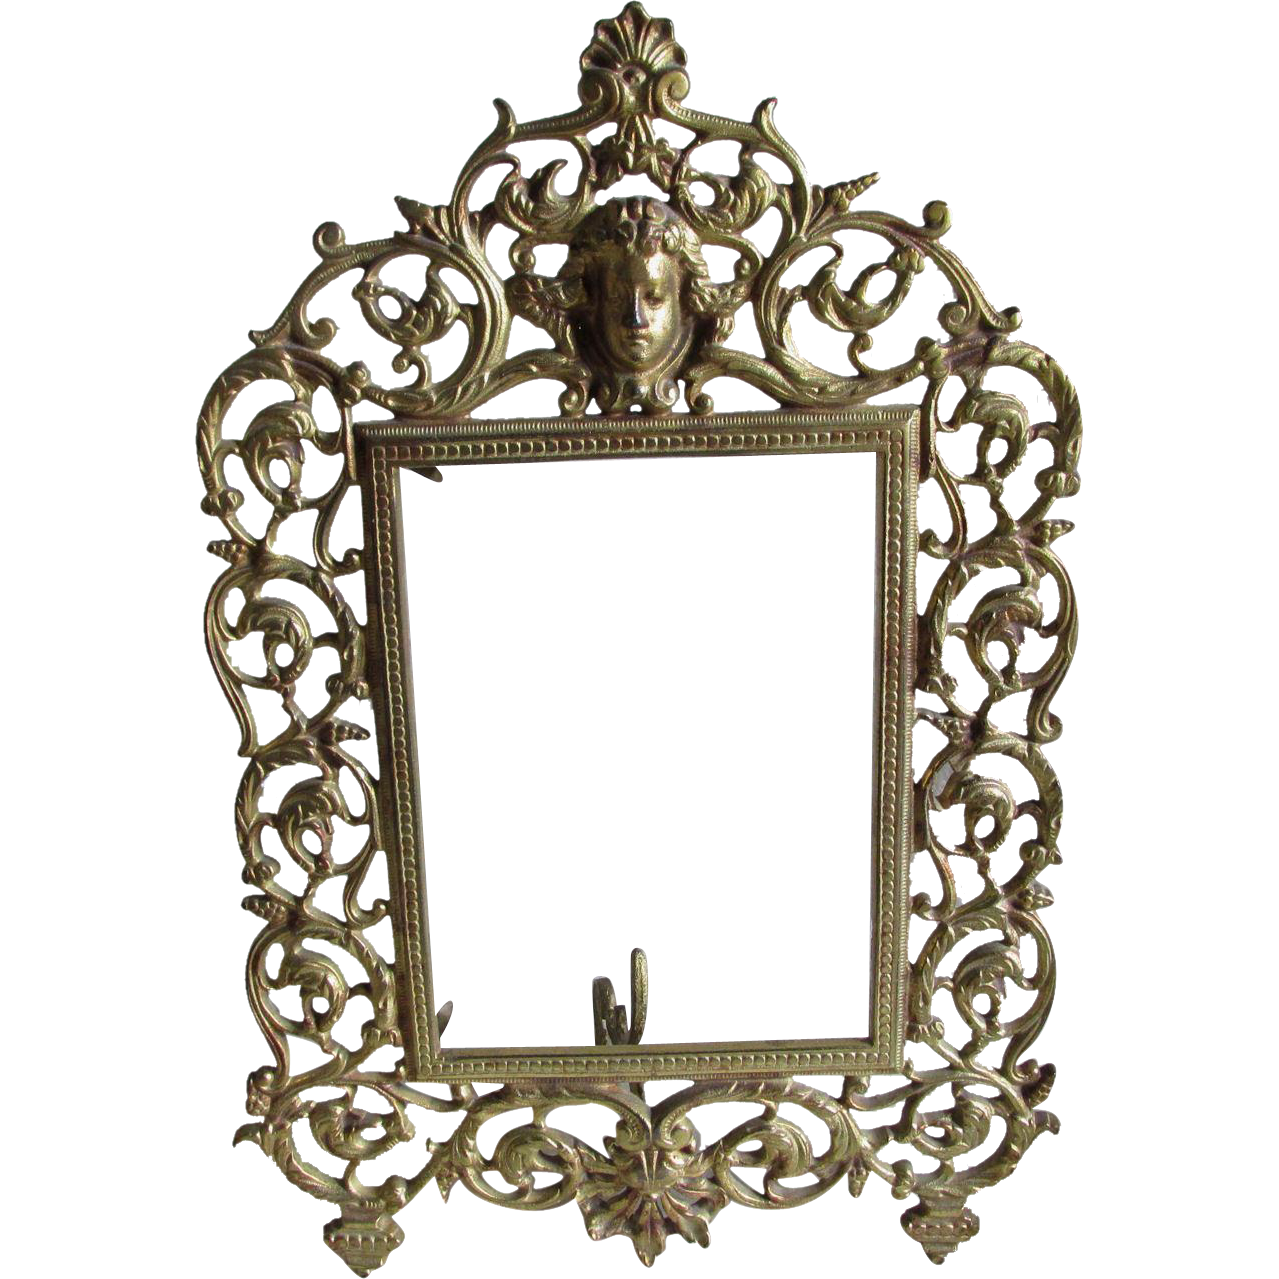 Antique Vanity Mirror, Picture Frame with Cherub Angel